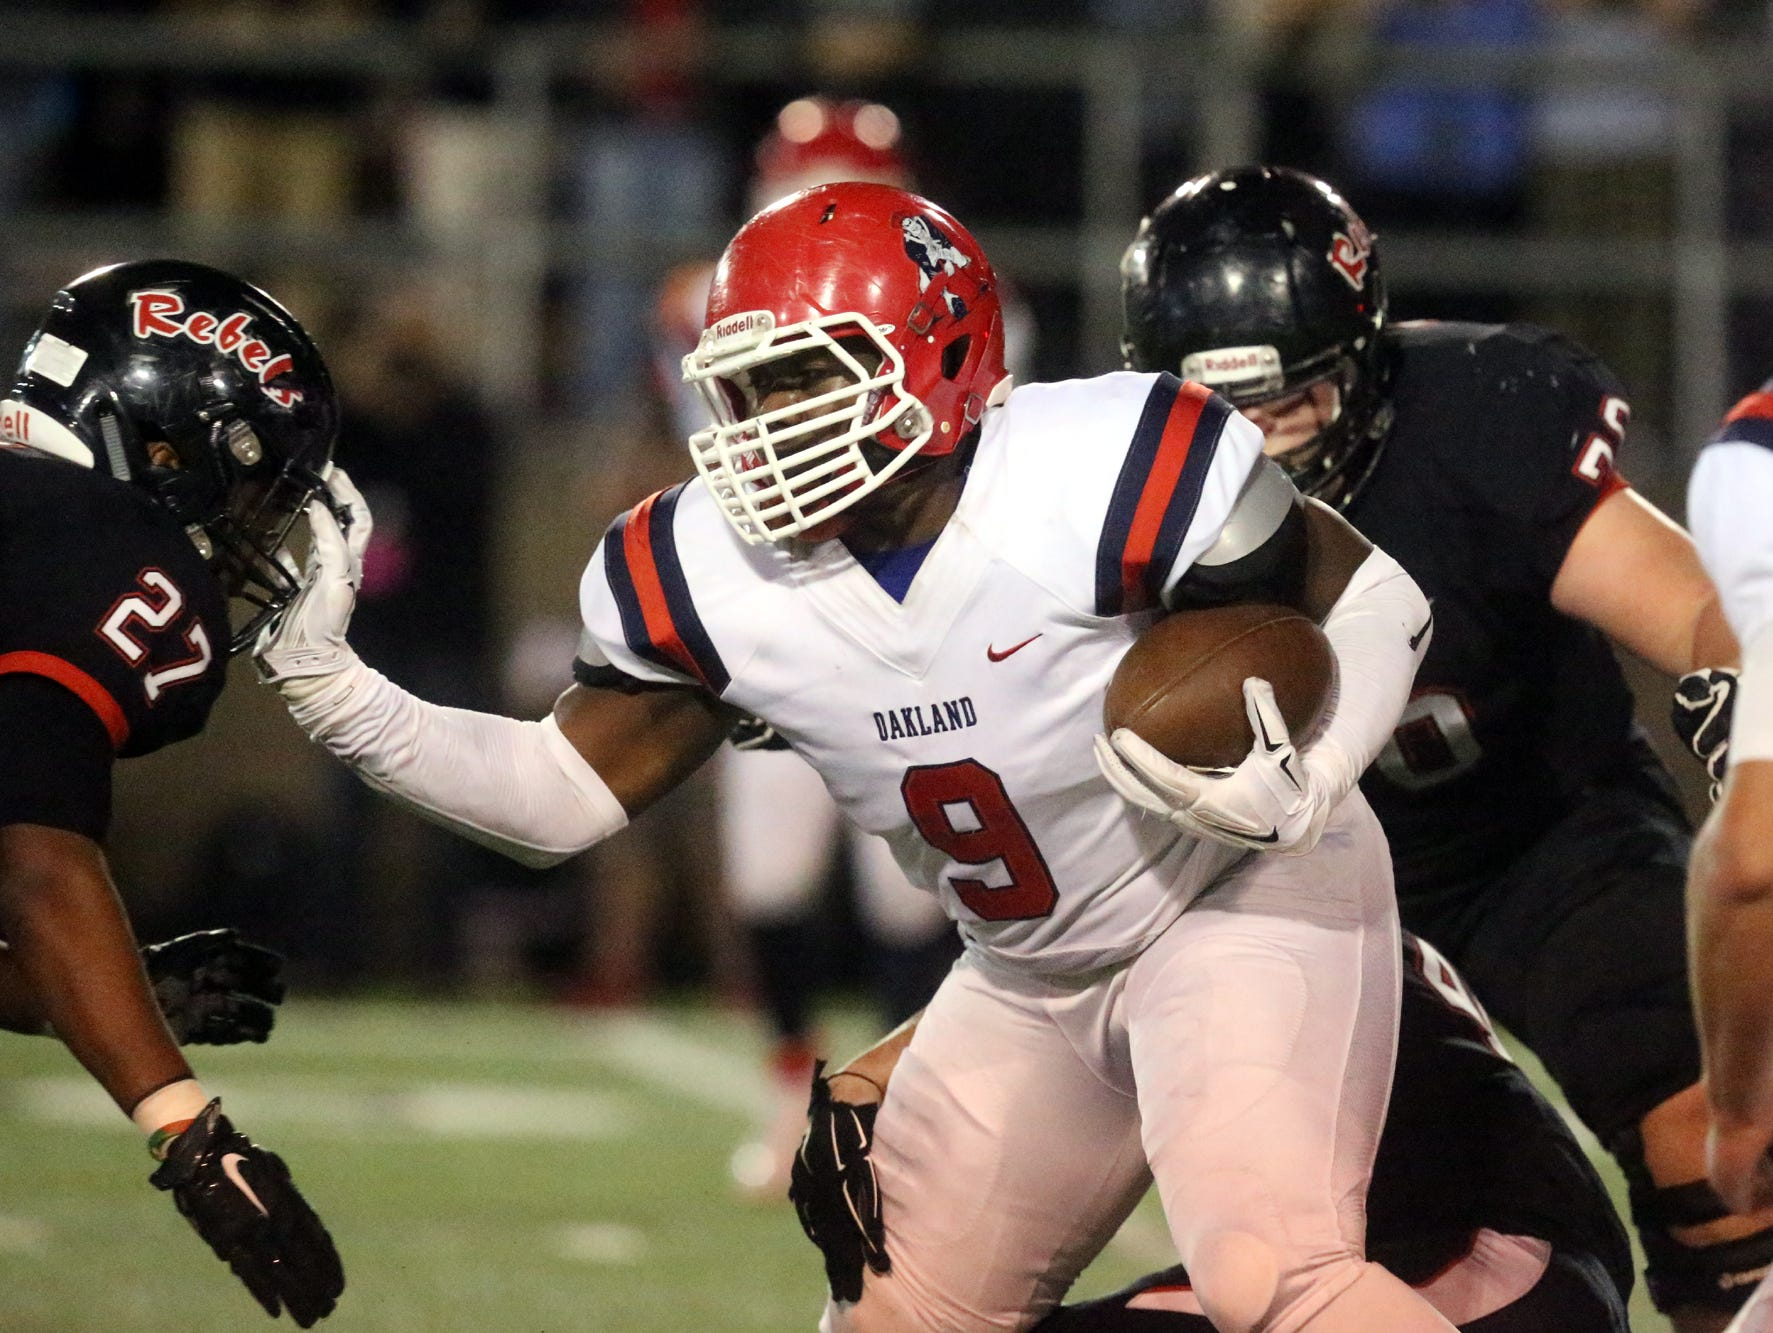 Oakland's Ty Nix (9) runs the ball as Maryville's TD Blackmon (27) moves in for the tackle Friday.